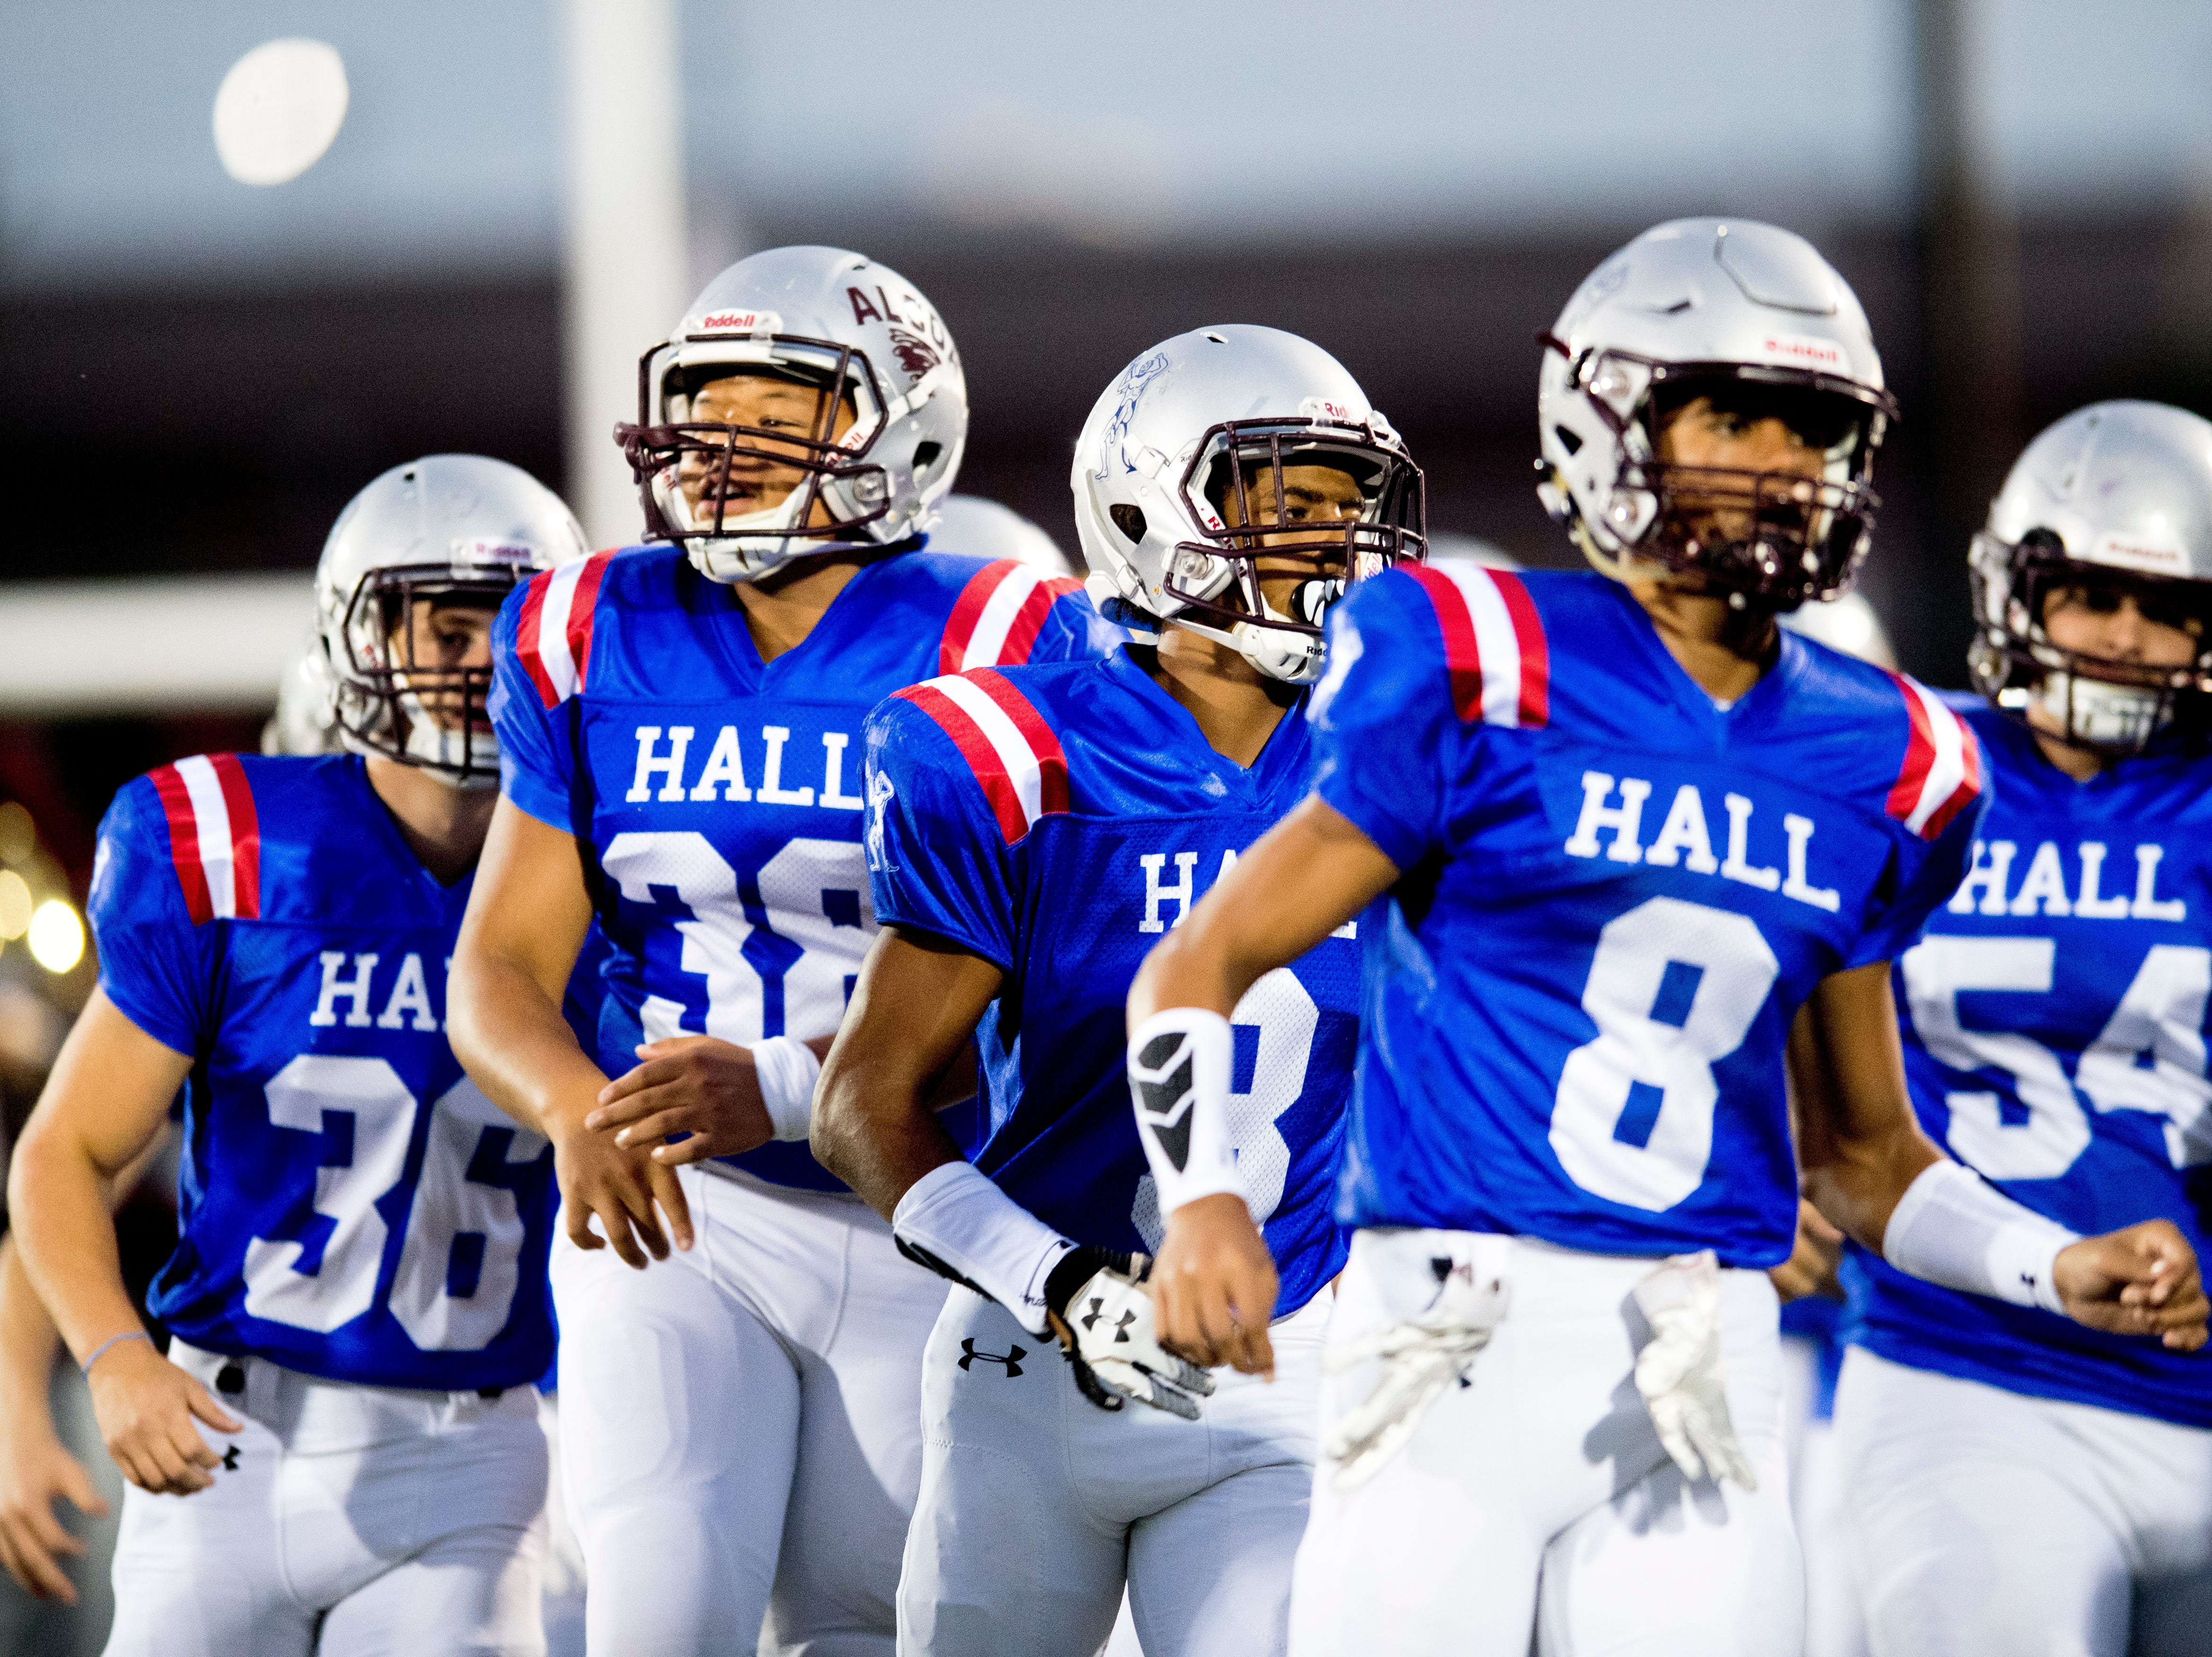 Alcoa in Hall High School jerseys storm the field during a game between Alcoa and Northview at Alcoa High School in Alcoa, Tennessee on Friday, September 28, 2018.